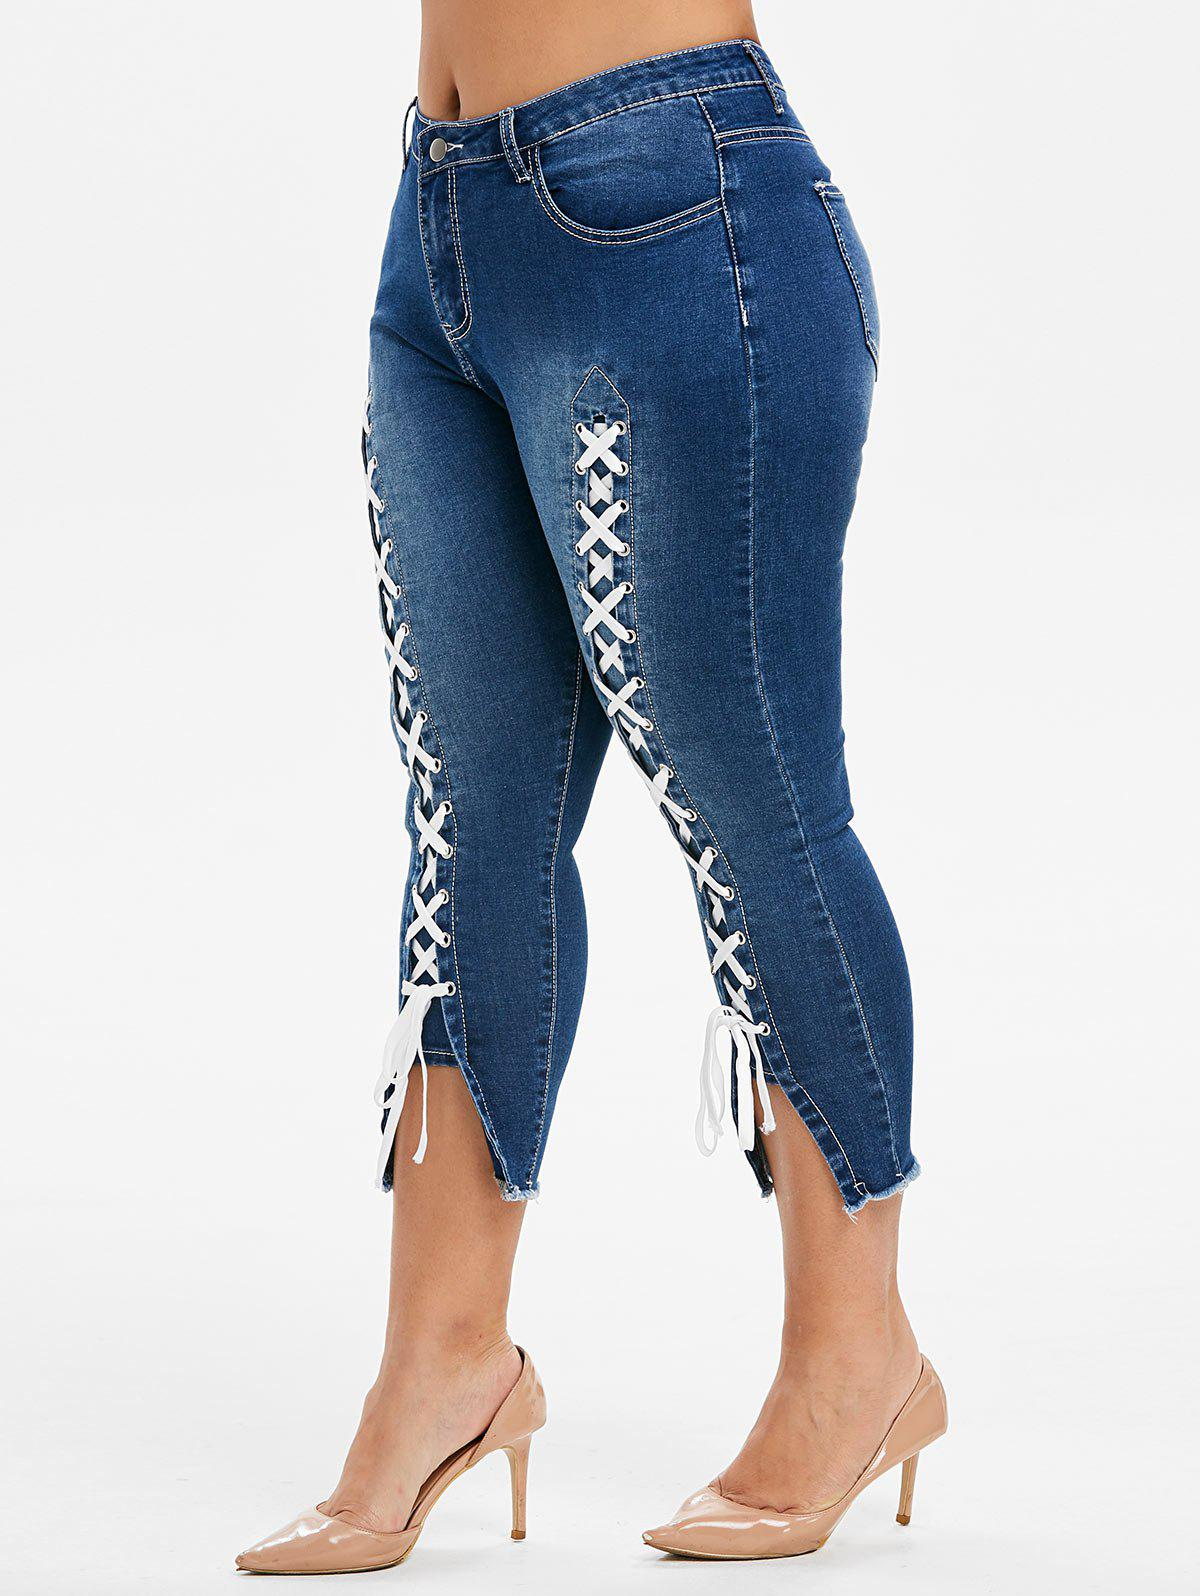 Plus Size Lace Up Frayed Cropped Jeans - DENIM DARK BLUE 2X